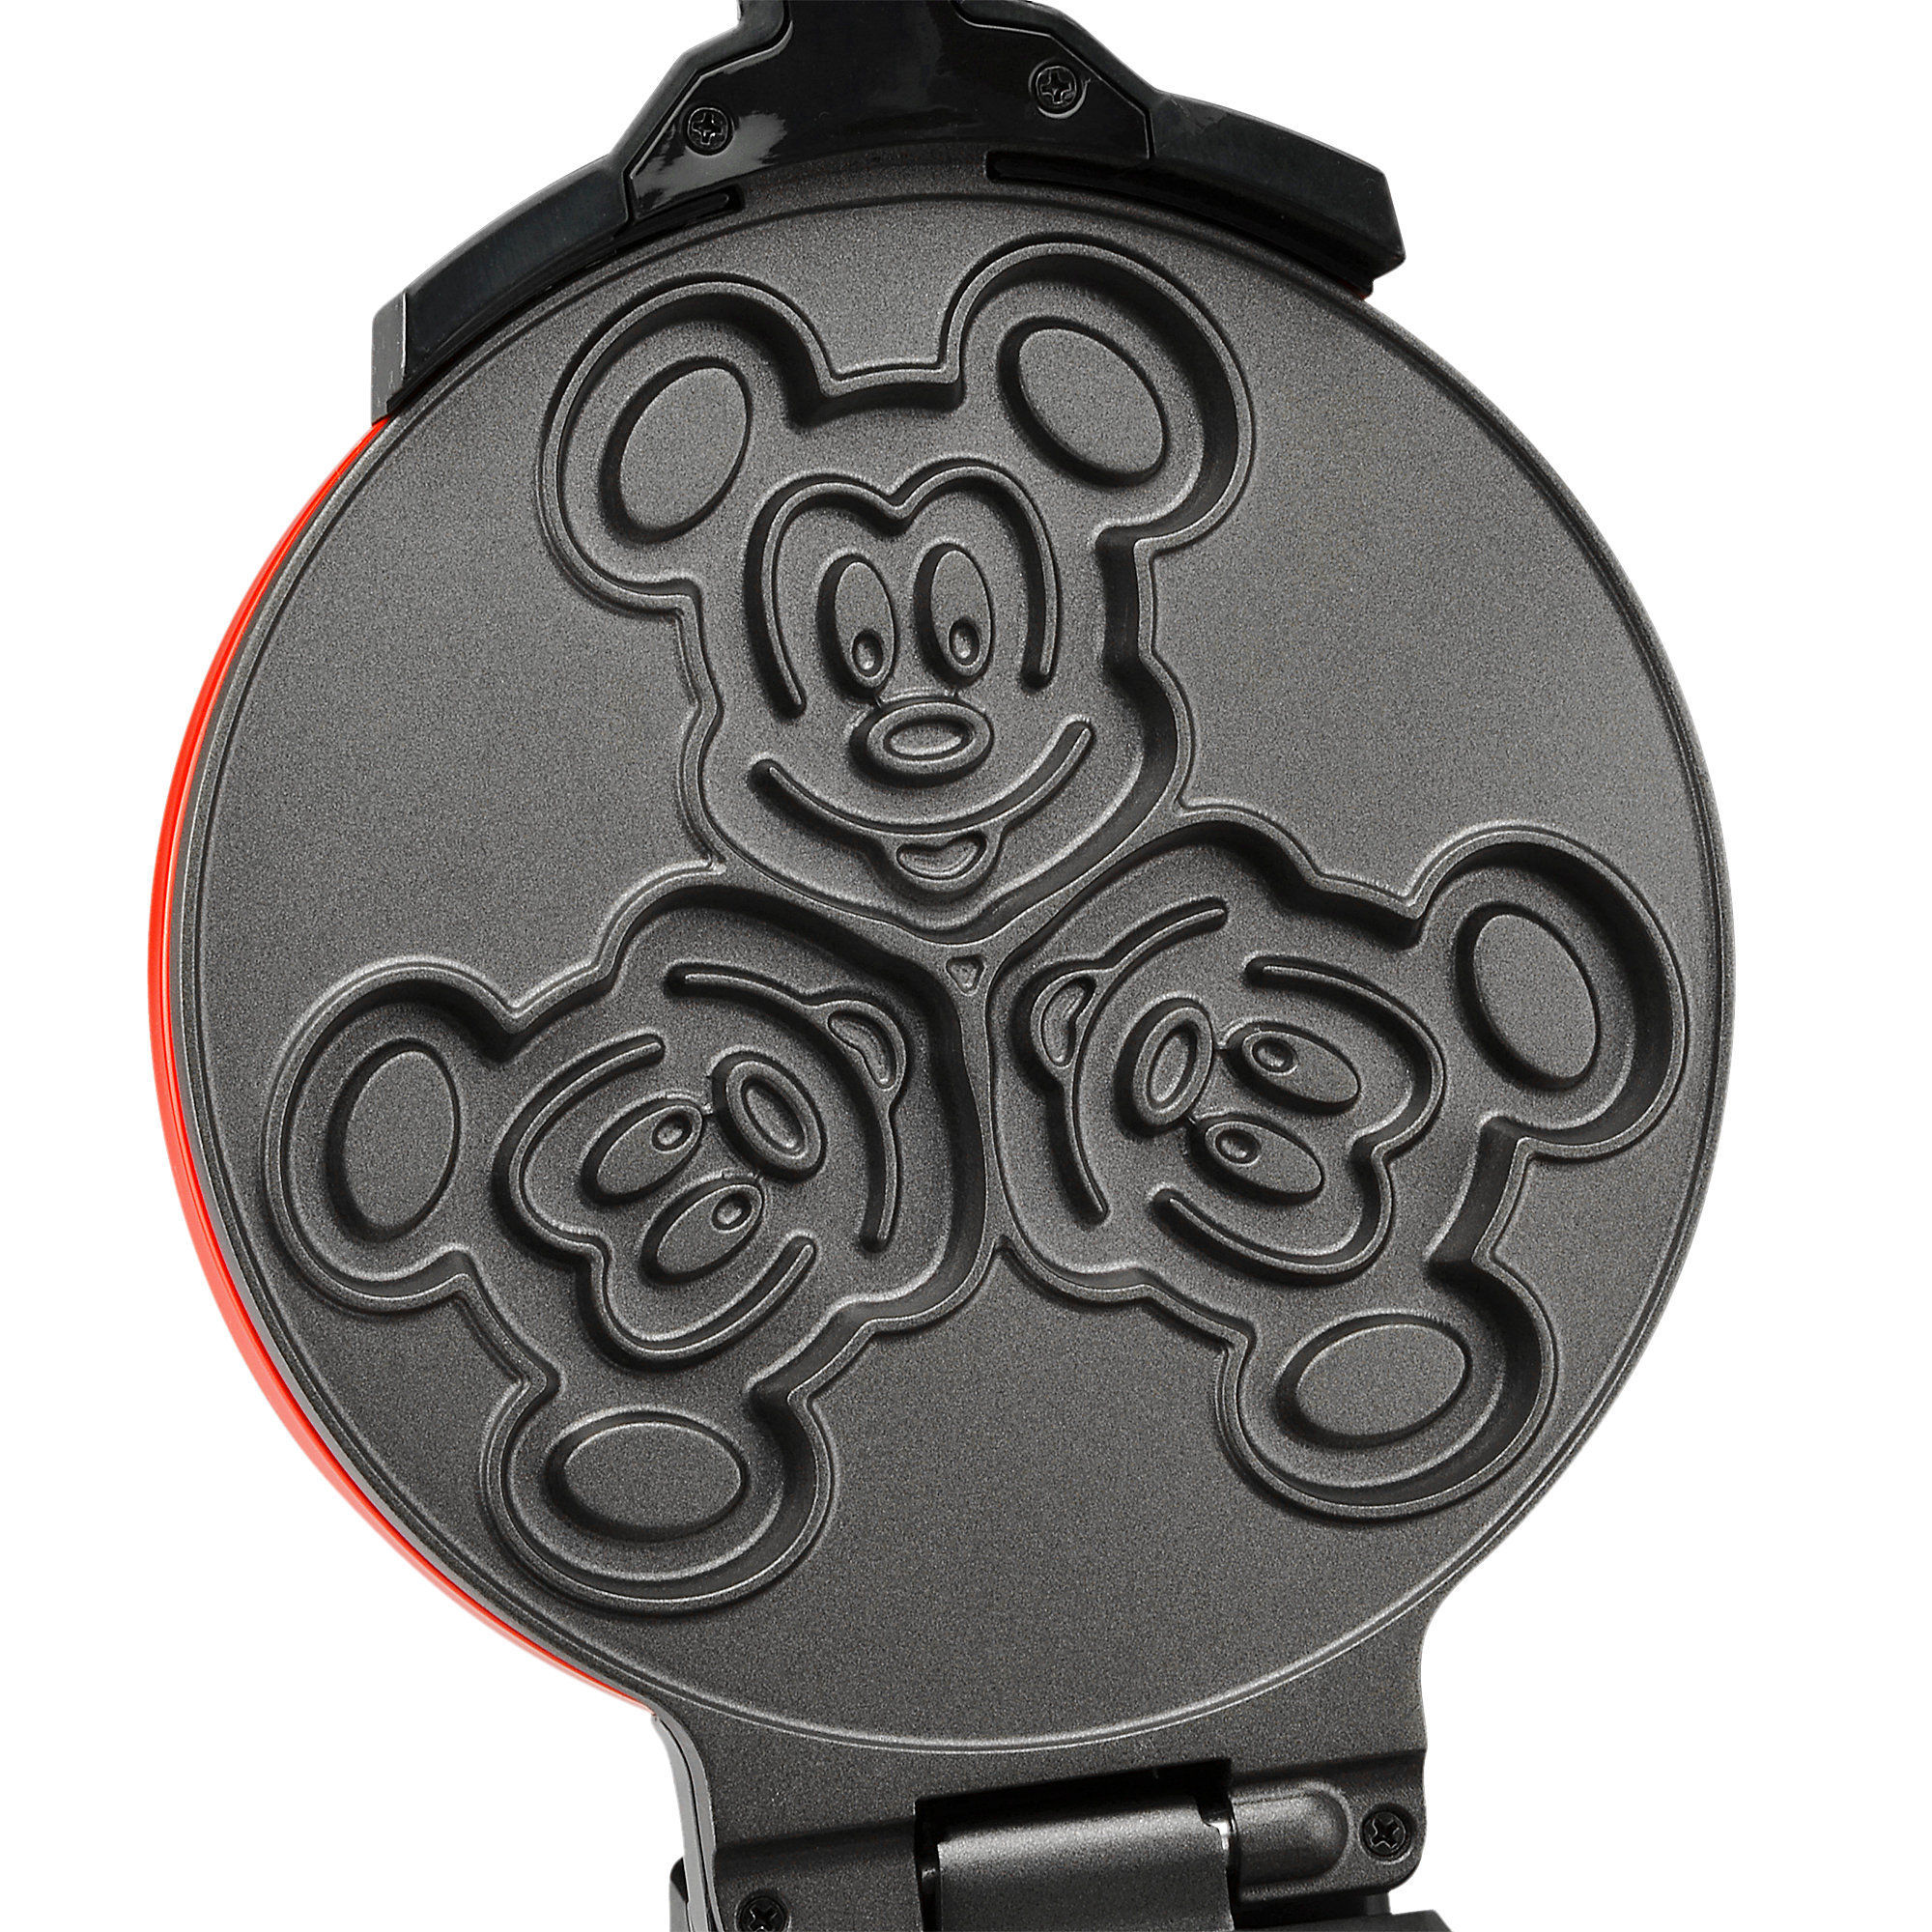 a7348d0d0 Has anyone seen/purchased this new Mickey 90th Anniversary waffle maker? I  ordered one, and it looks like it might actually make Mickey waffles like  the ...